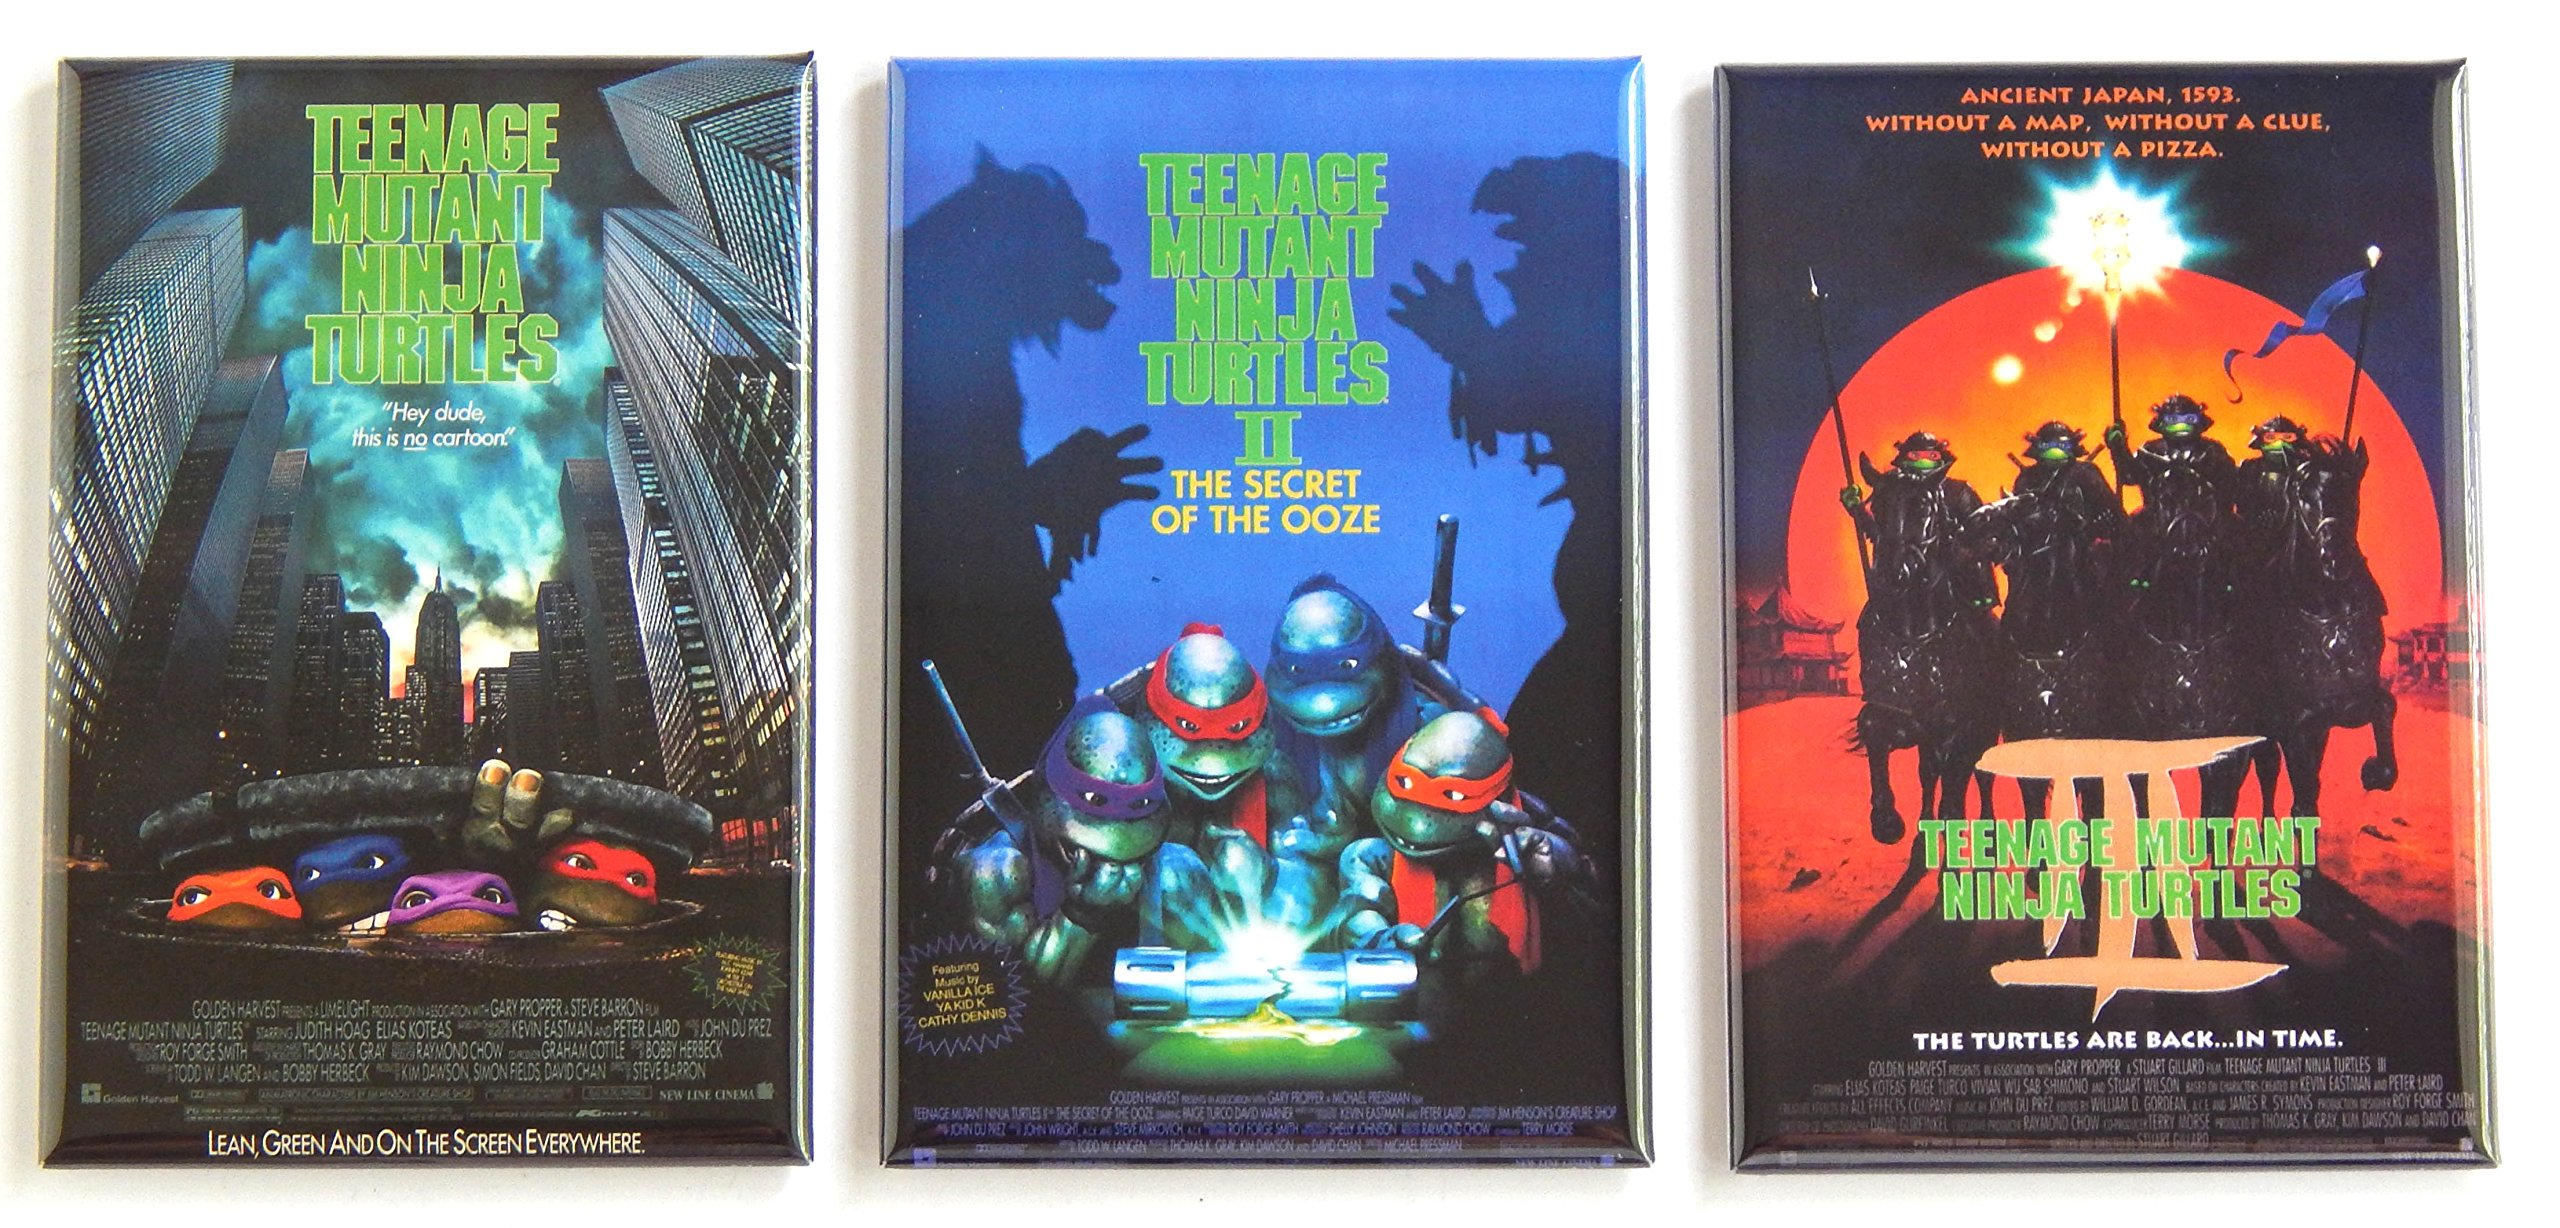 Teenage Mutant Ninja Turtles Movie Poster Fridge Magnet Set (2 x 3 inches each)